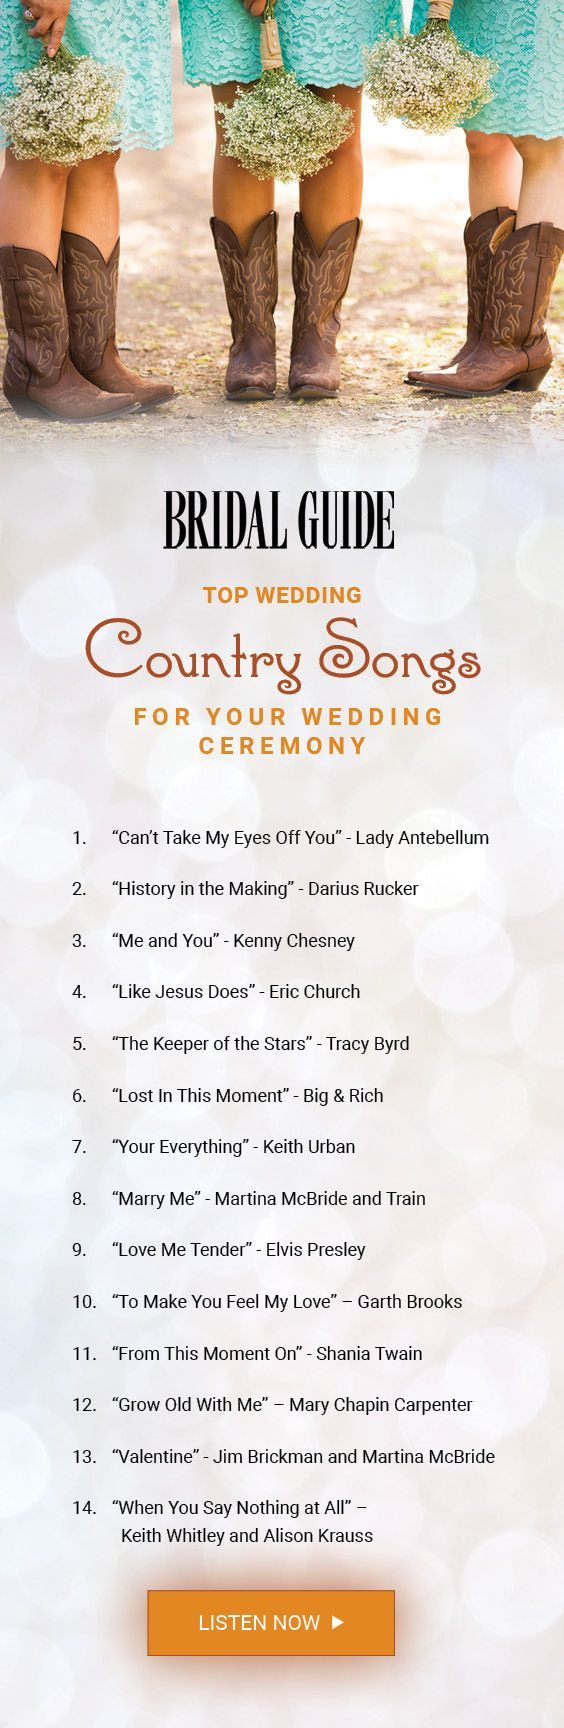 Check out our countdown of the top country songs to play during your wedding ceremony! #CountryWedding #WeddingSongs #WeddingMusic from #BridalGuide